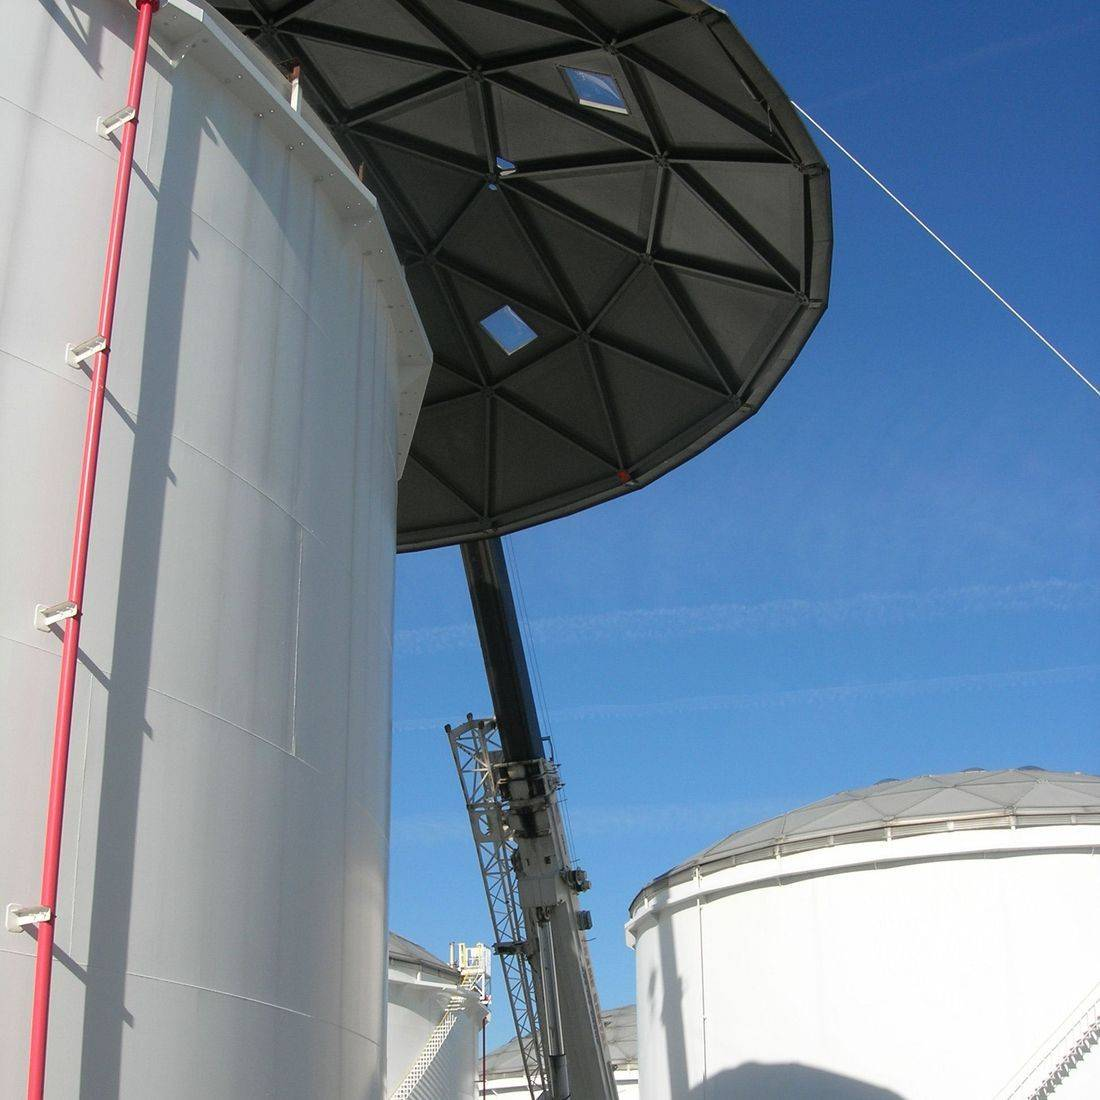 API 653 Storage Tank repair project; Lowering of geodome from welded steel storage tank for dismantling at ground level.